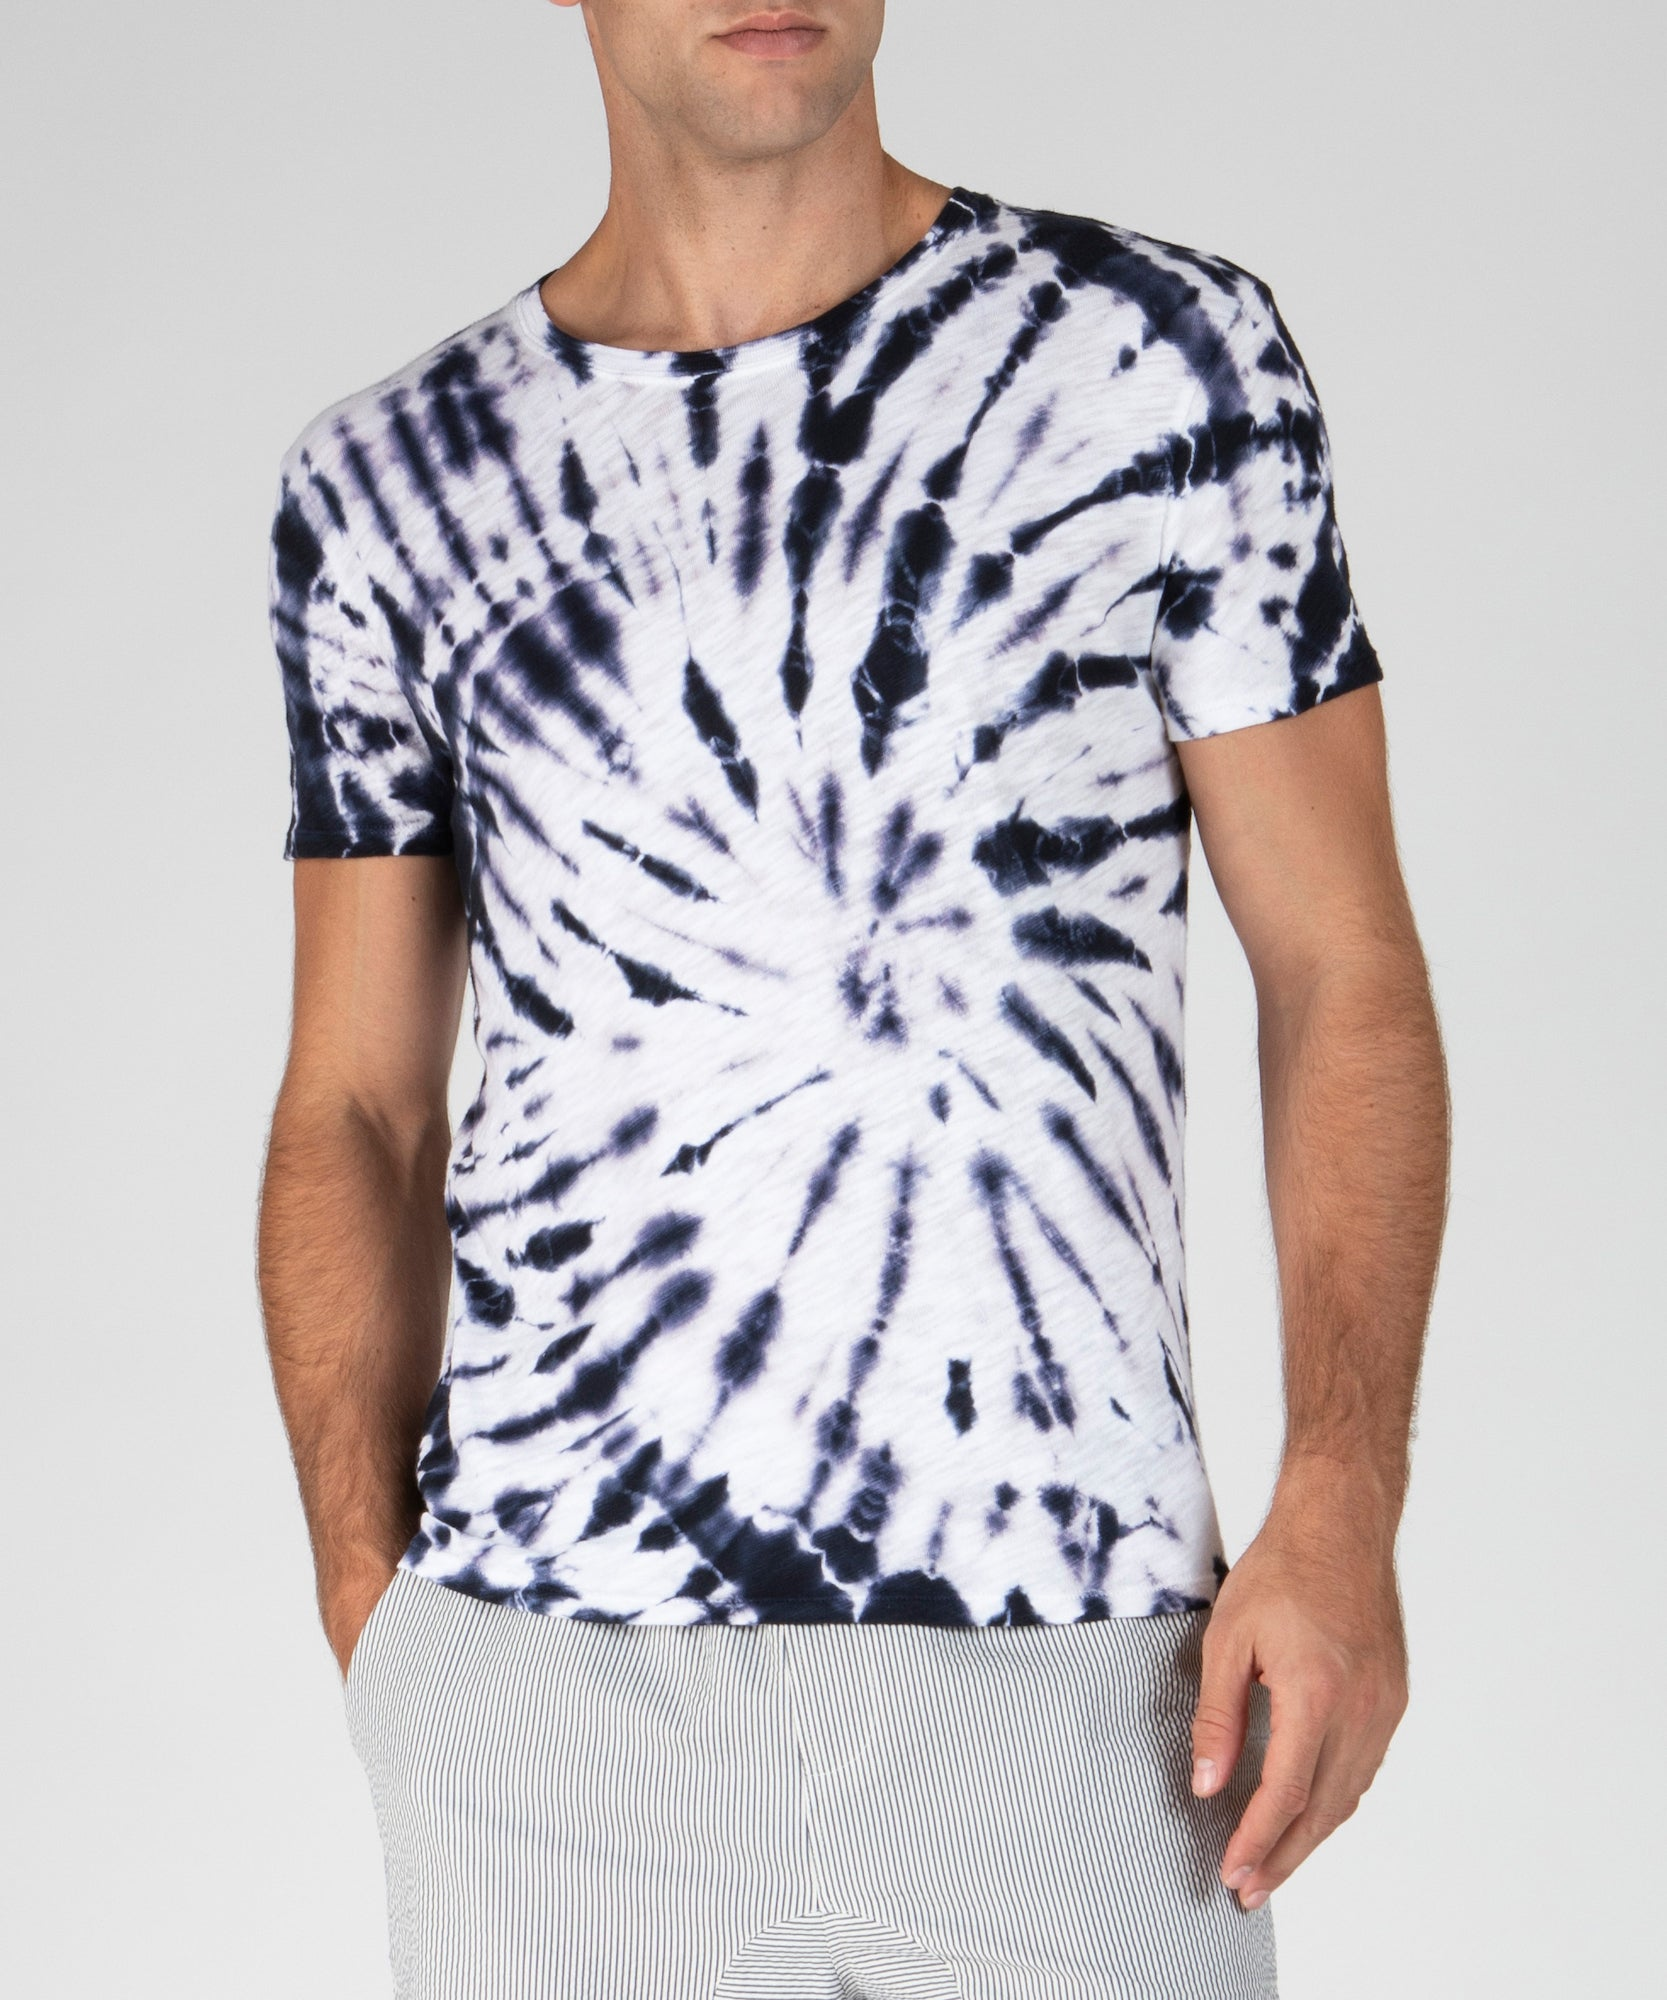 Dark Navy Tie Dye Slub Jersey Crew Neck Tee - Men's Cotton Short Sleeve Tee by ATM Anthony Thomas Melillo